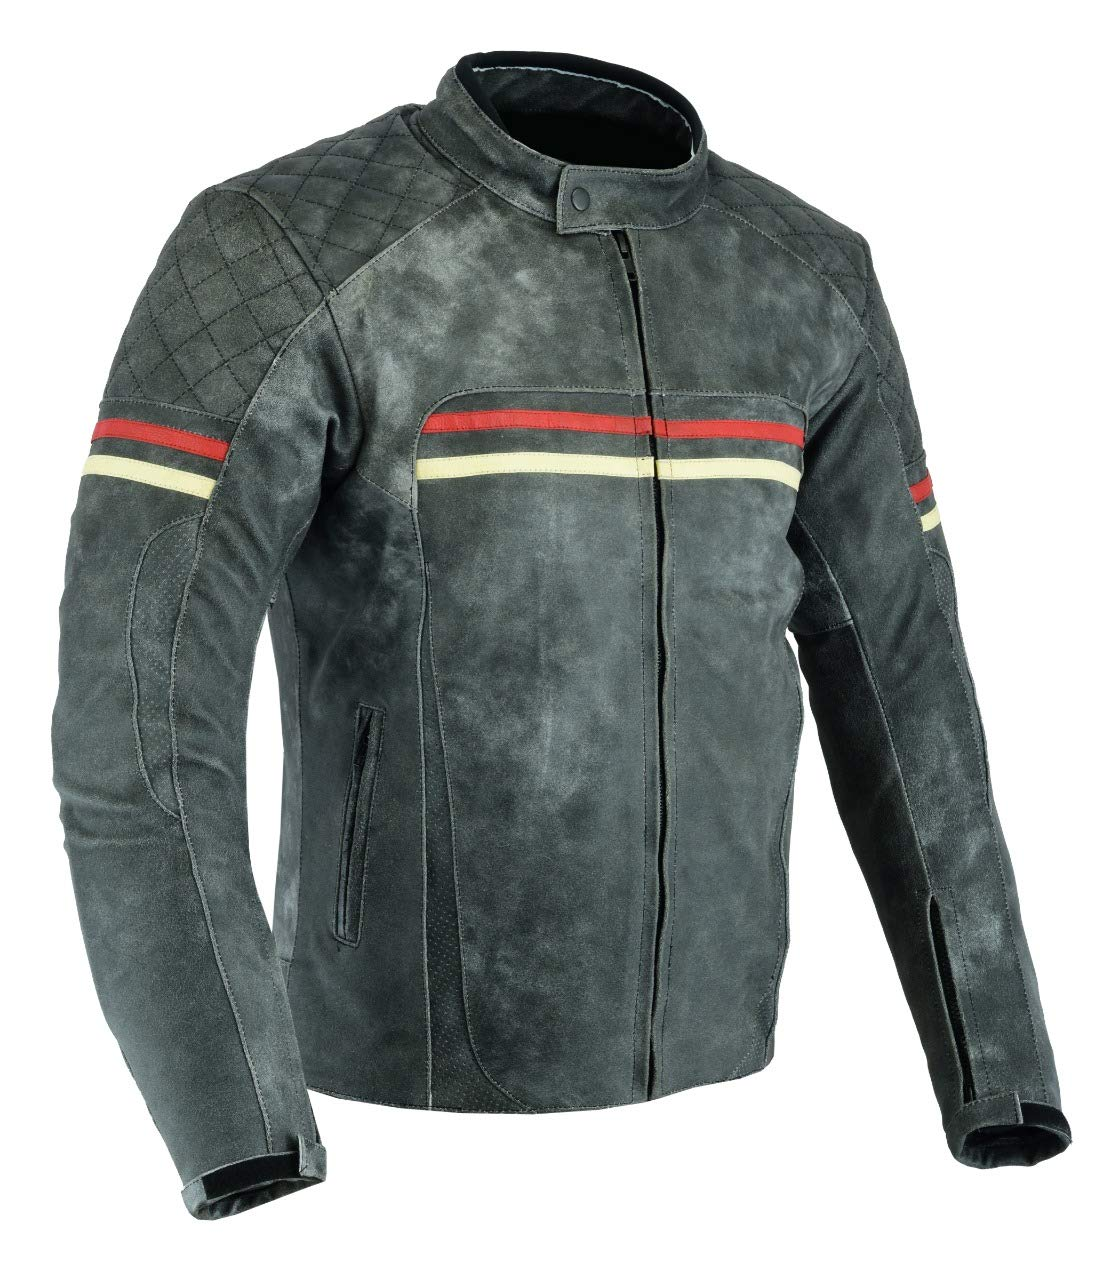 XXL MENS MOTORCYCLE ARMOURED MOTOR SPORTS HIGH PROTECTION MOTORCYCLE DISTRESSED LEATHER JACKET DC-4077